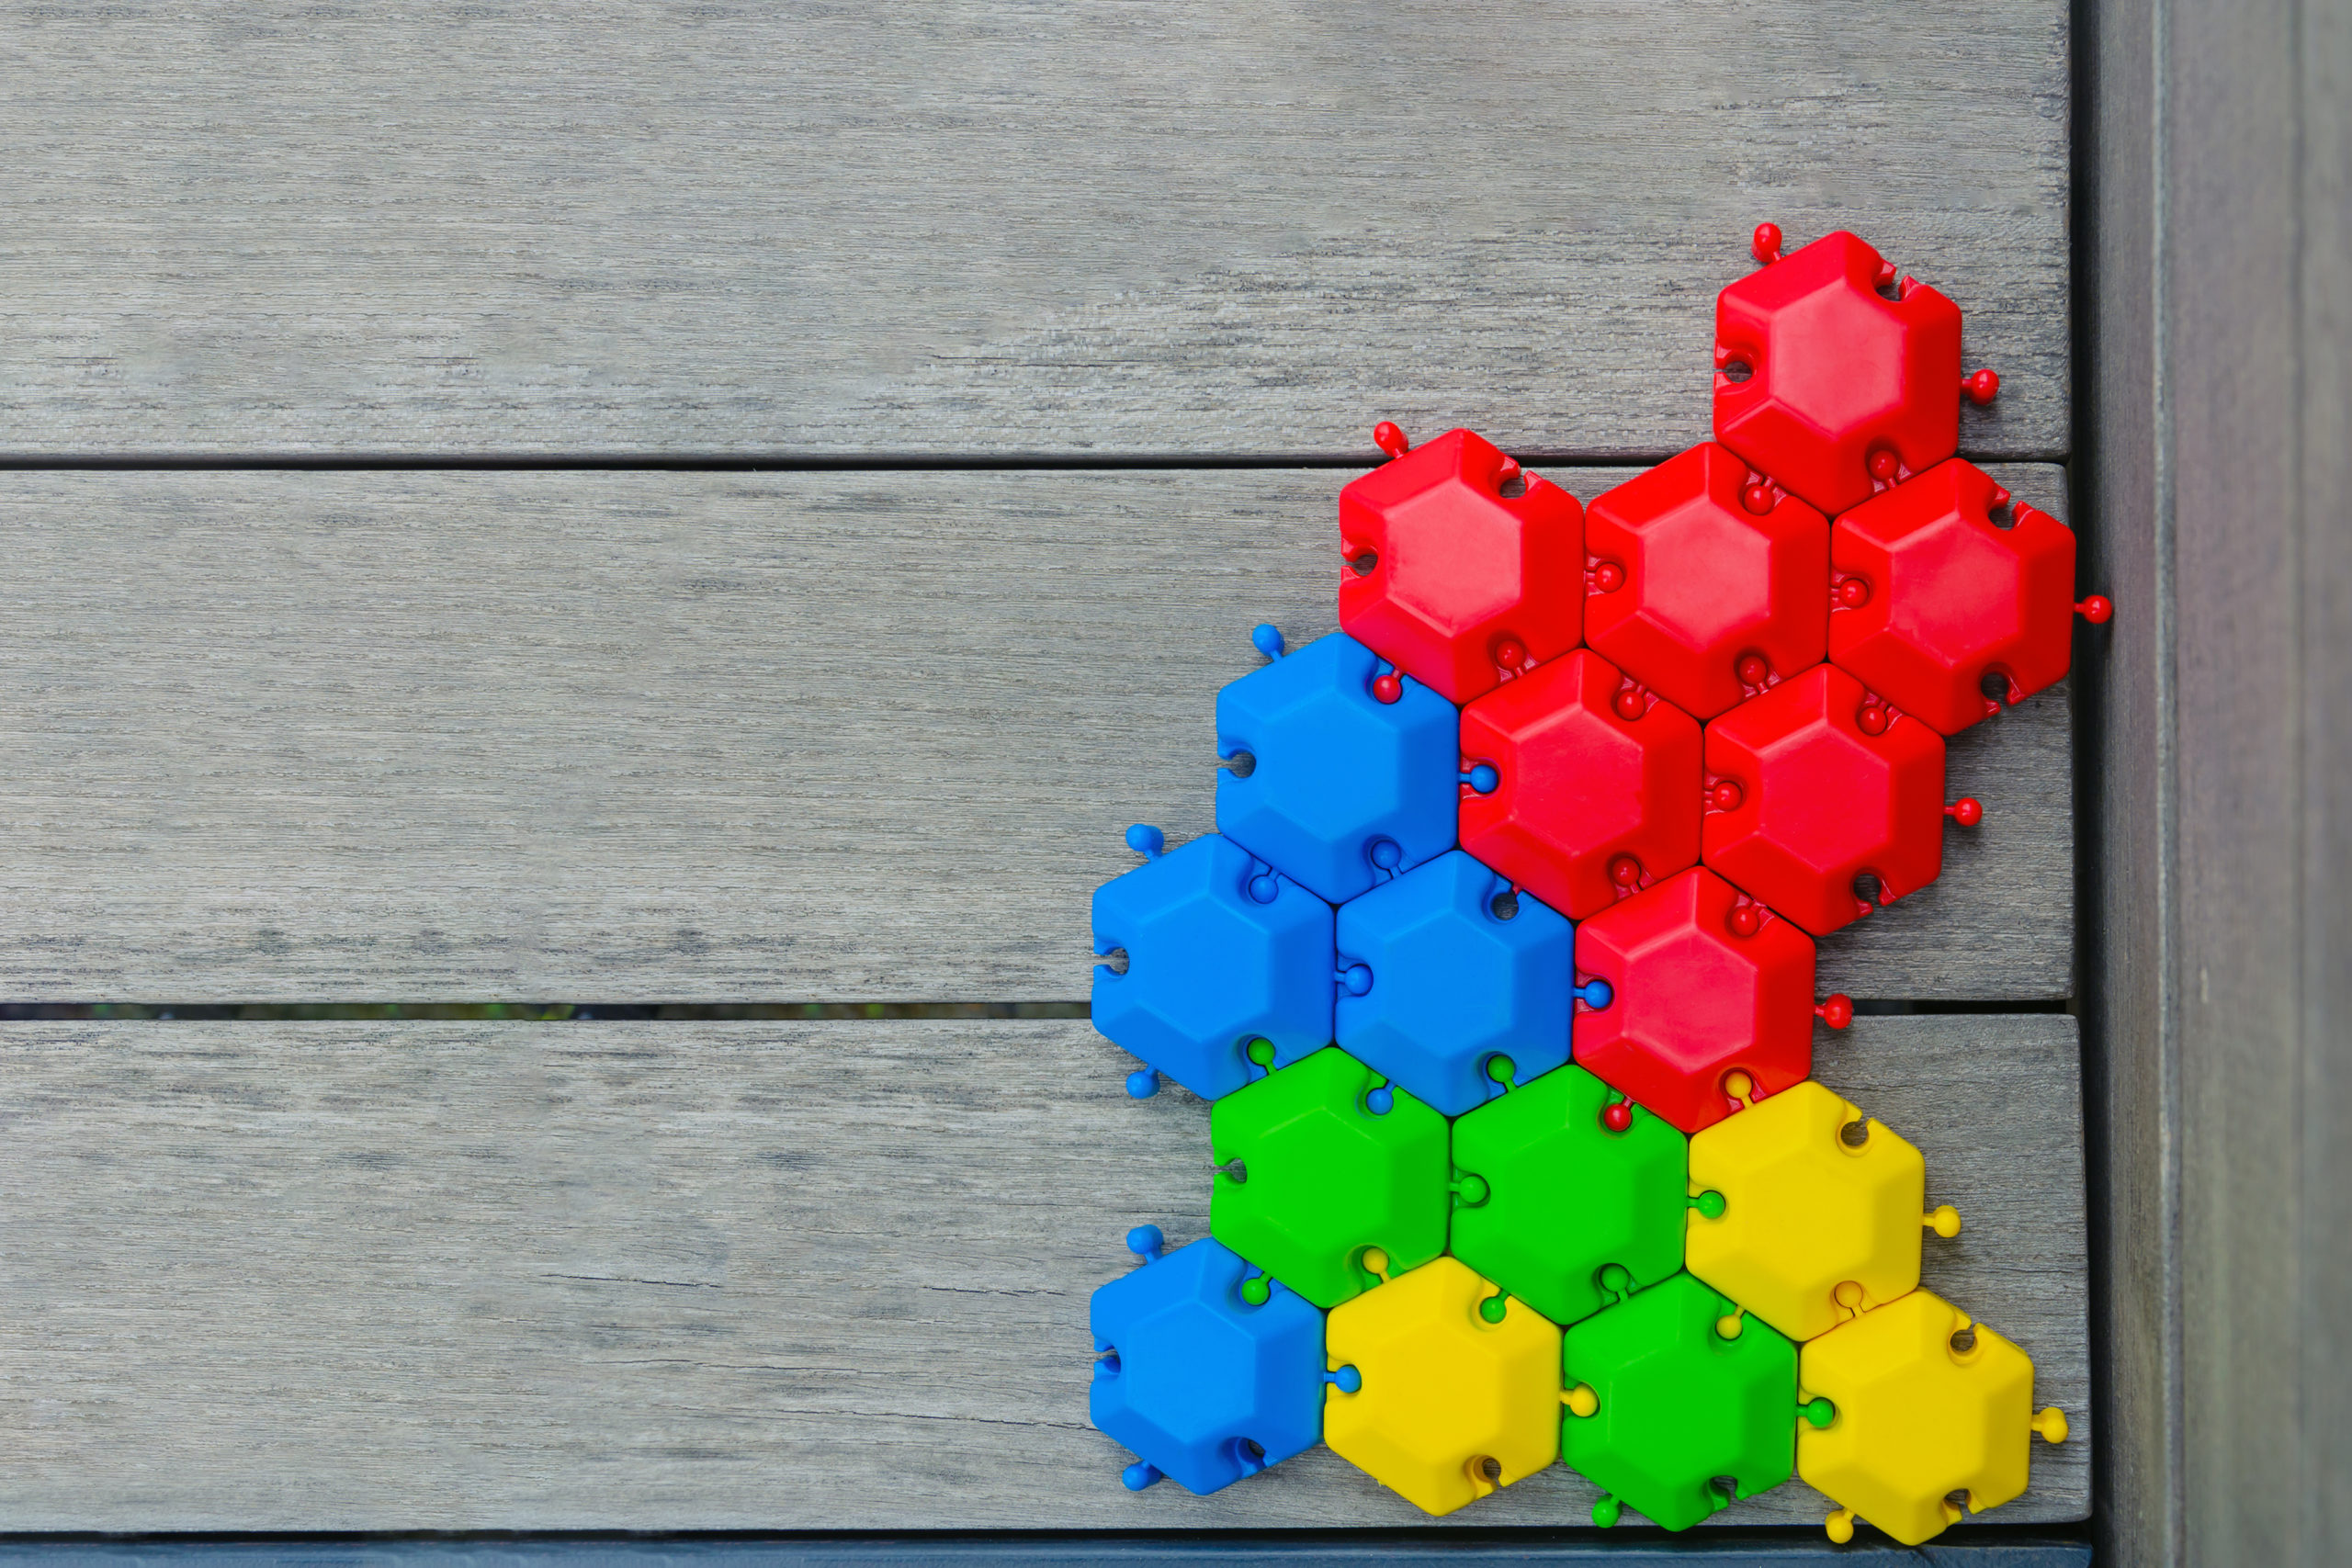 Game,Puzzle,Of,Multi-colored,Hexagons,Assembled,On,A,Wooden,Gray